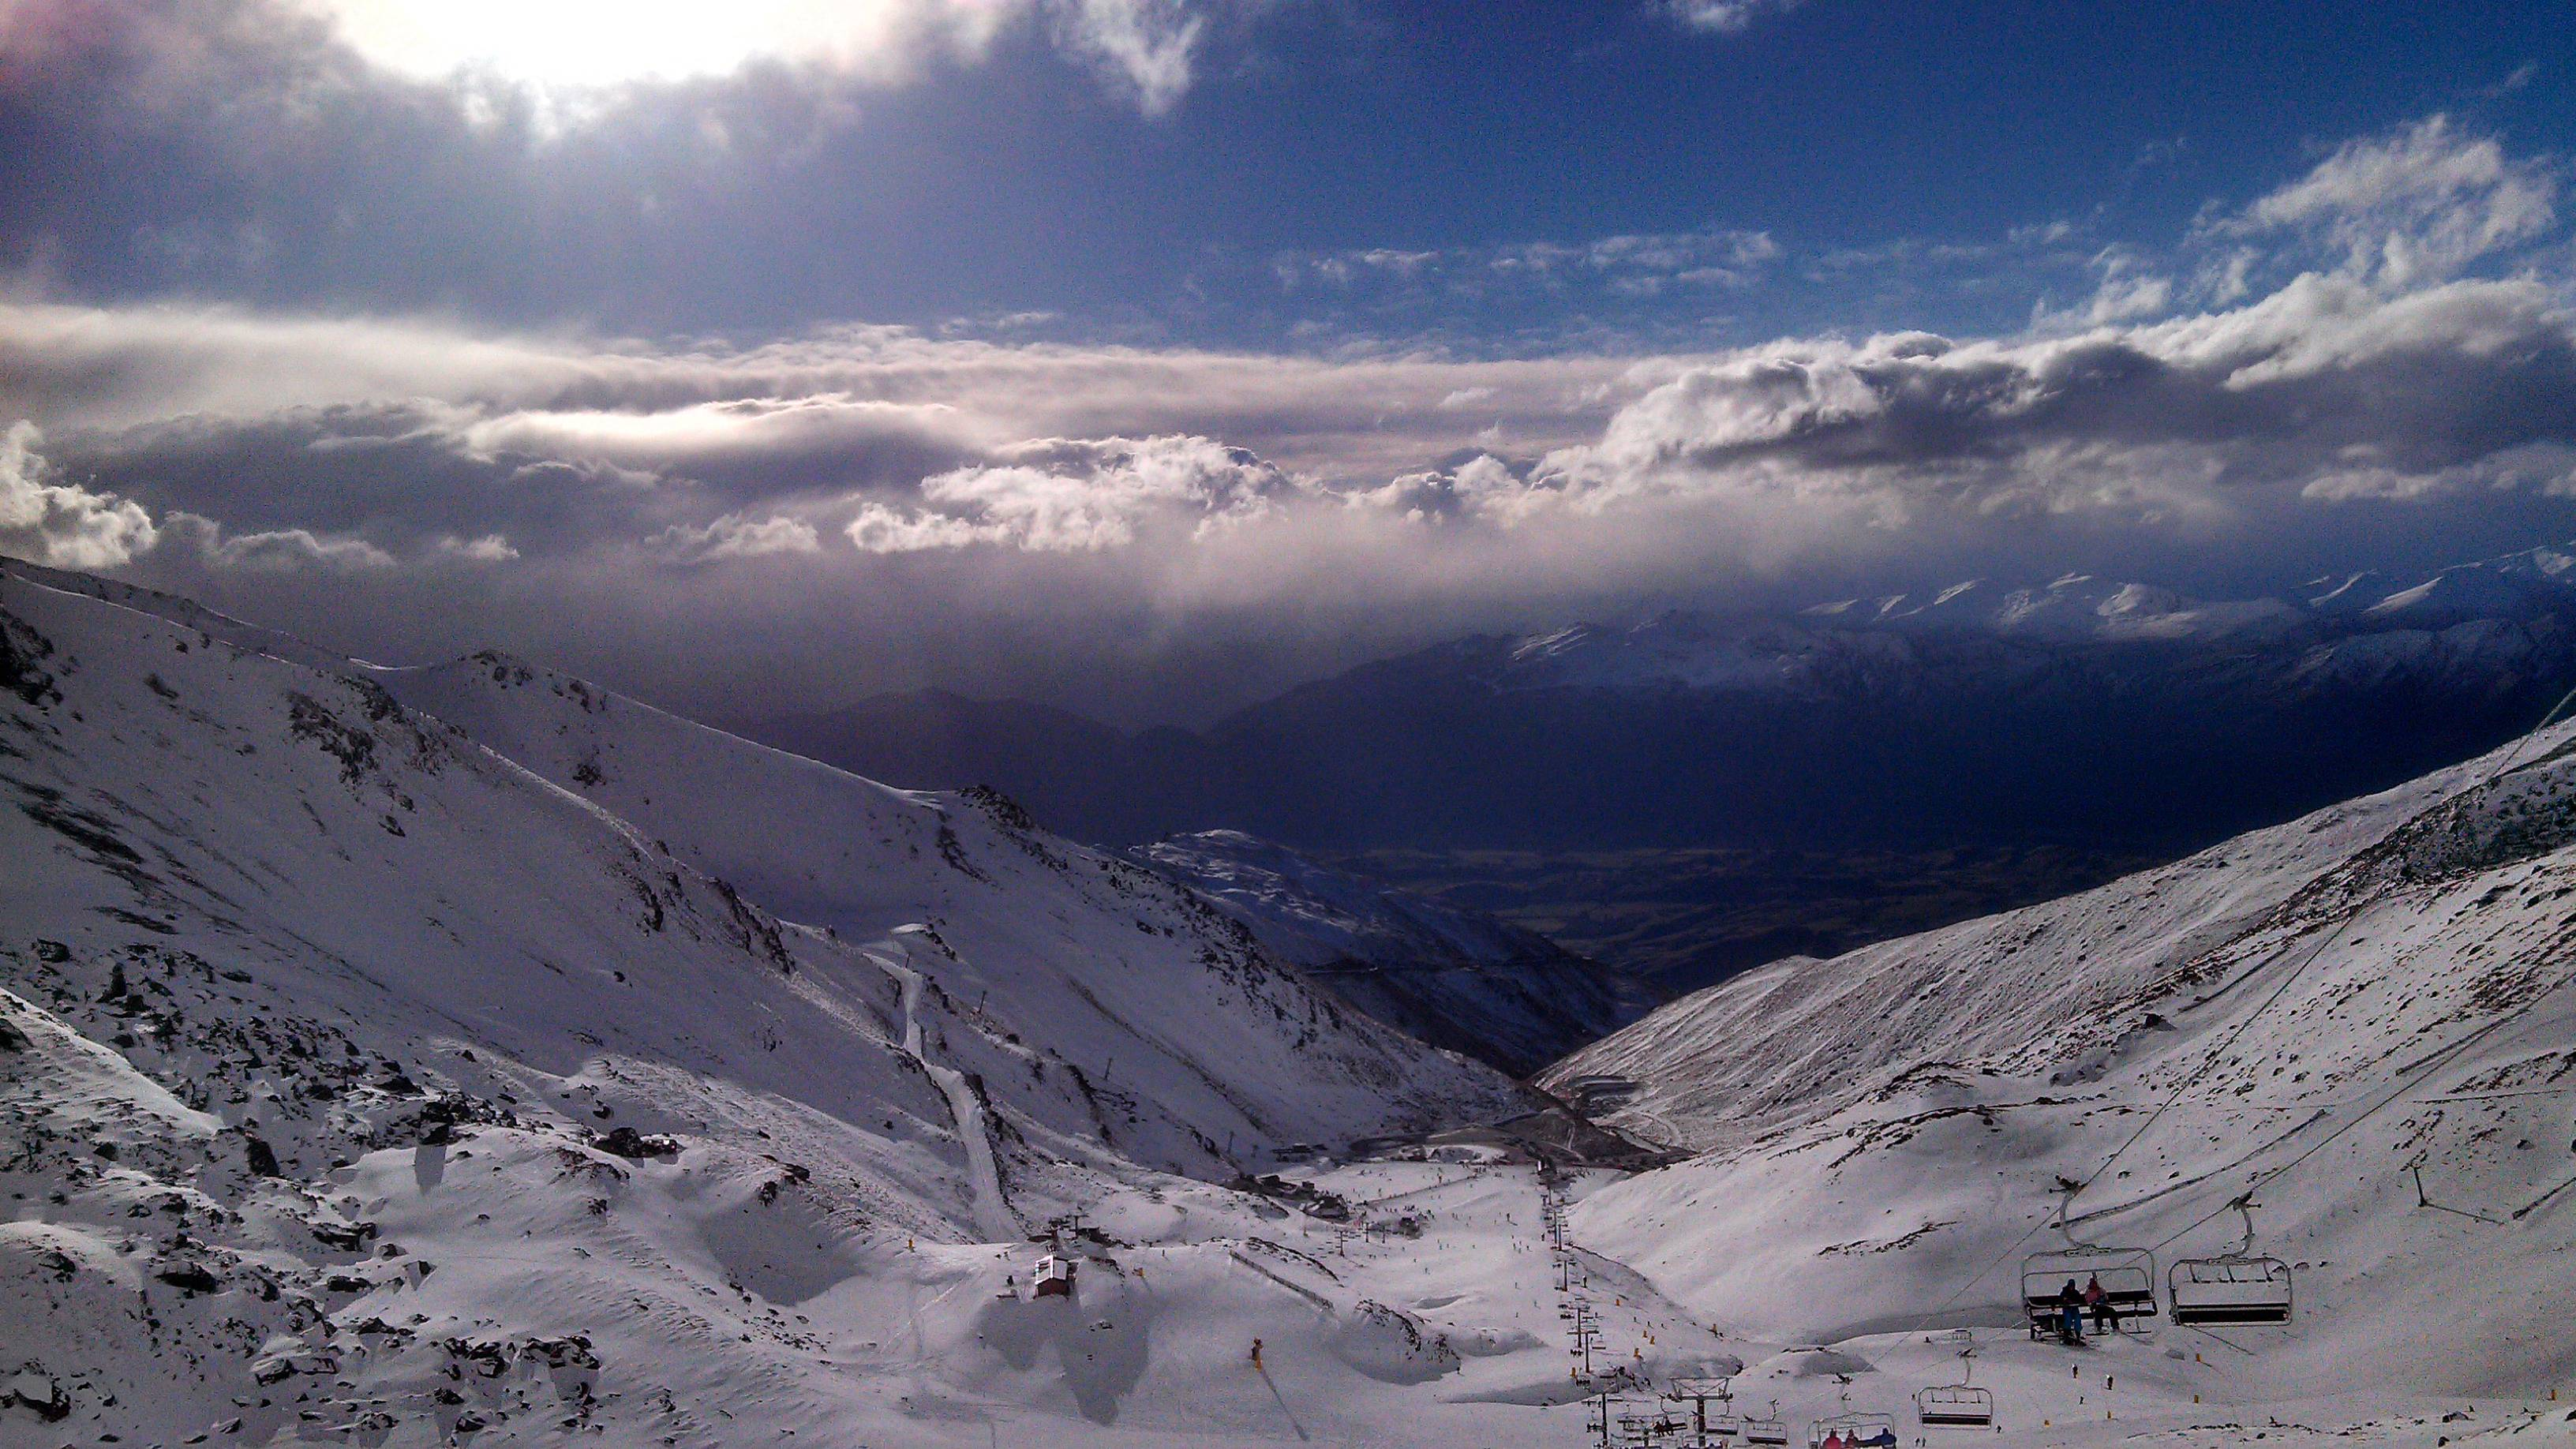 Skiers and snowboarders enjoy clear skies at The Remarkables ski area near Queenstown, New Zealand. The Remarkables is one of several large ski areas that has been making snow at record rates.